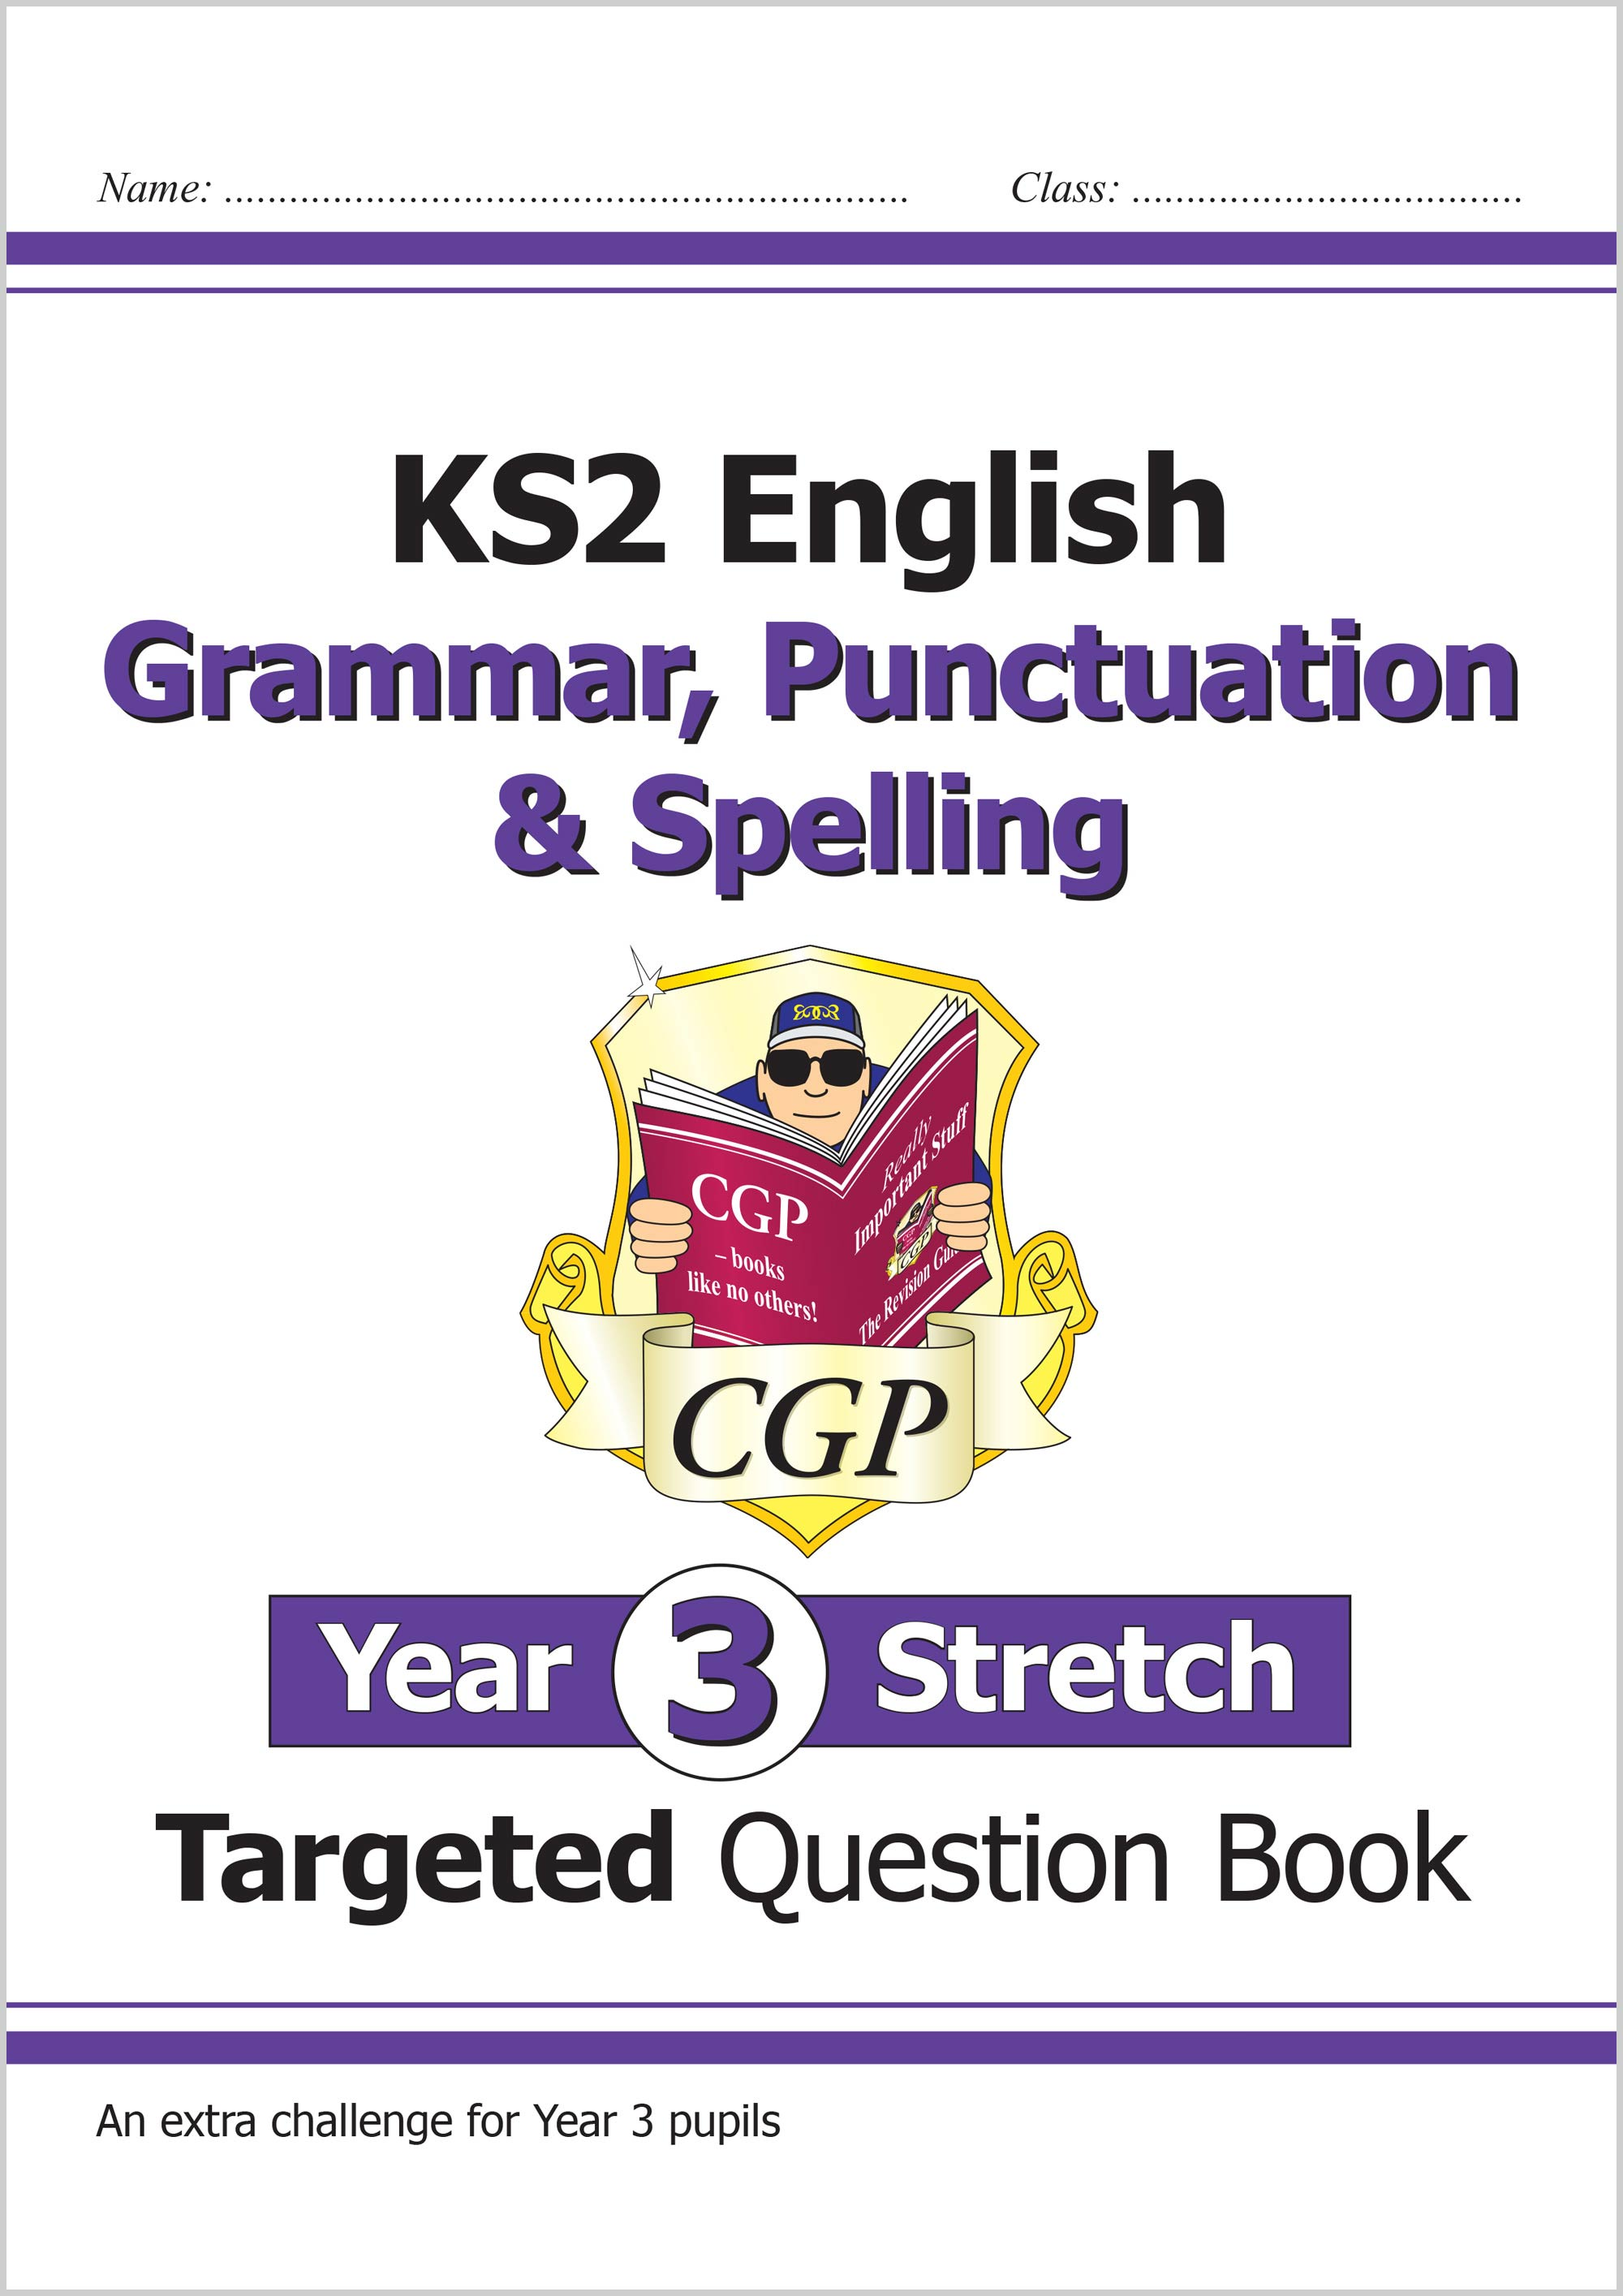 EG3HW21 - KS2 English Targeted Question Book: Challenging Grammar, Punctuation & Spelling - Year 3 S